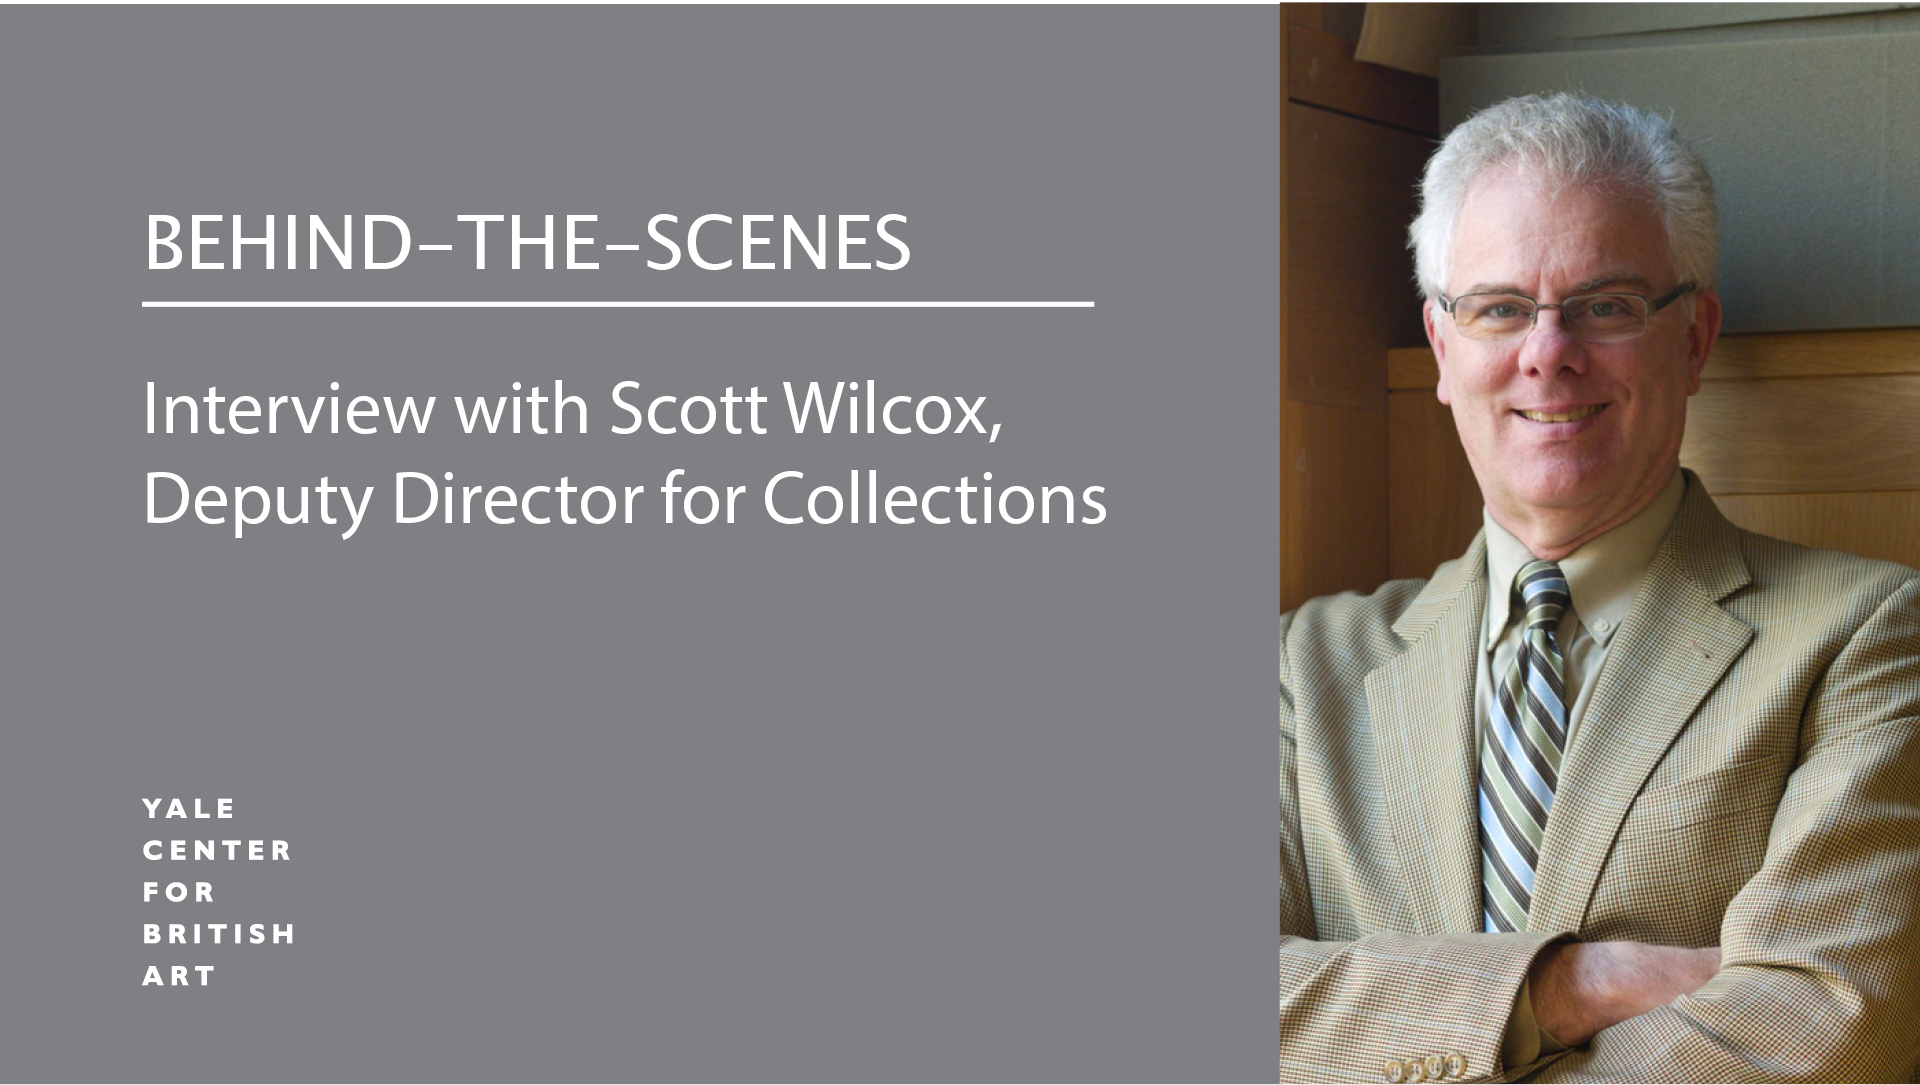 Scott Wilcox, Deputy Director for Collections at the Yale Center for British Art (now Senior Scholar)